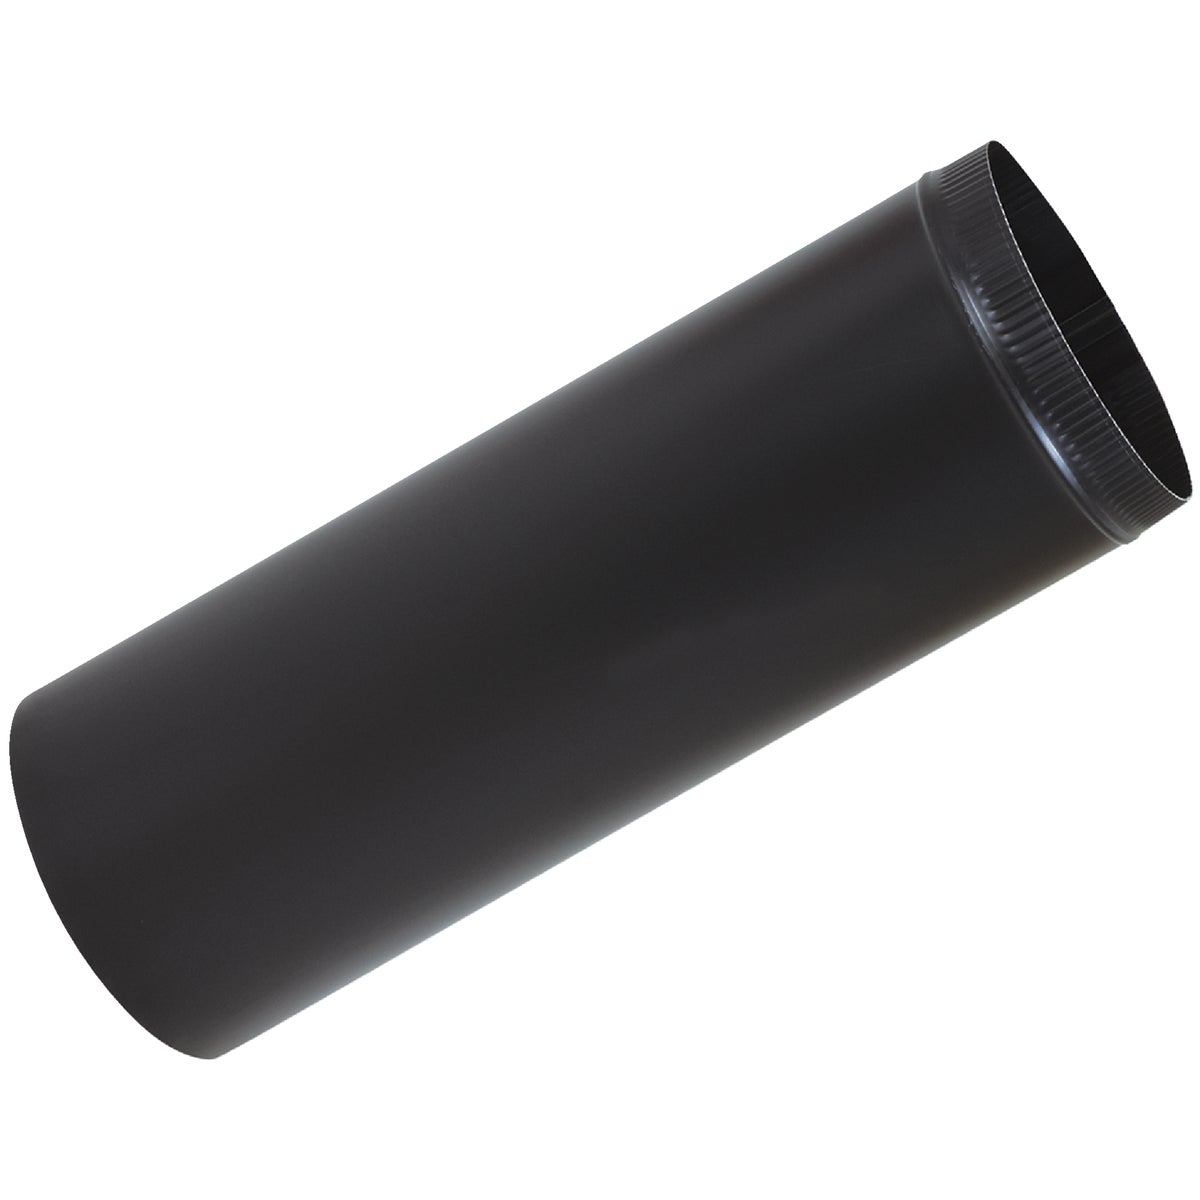 4X24 BLACK STOVE PIPE - BM0344 by Imperial Mfg Group